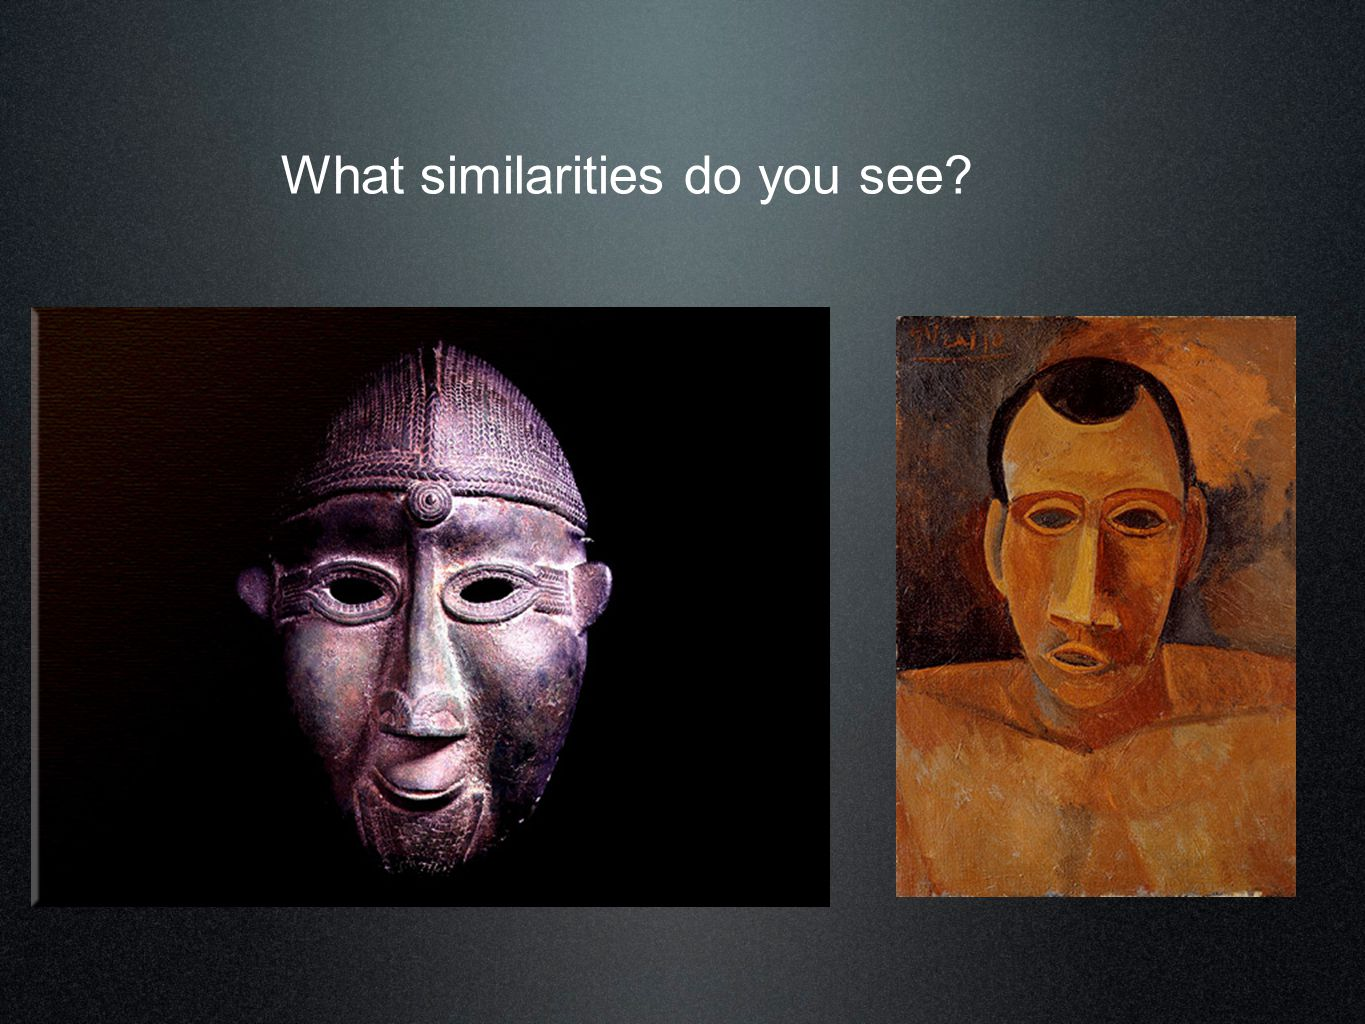 What similarities do you see